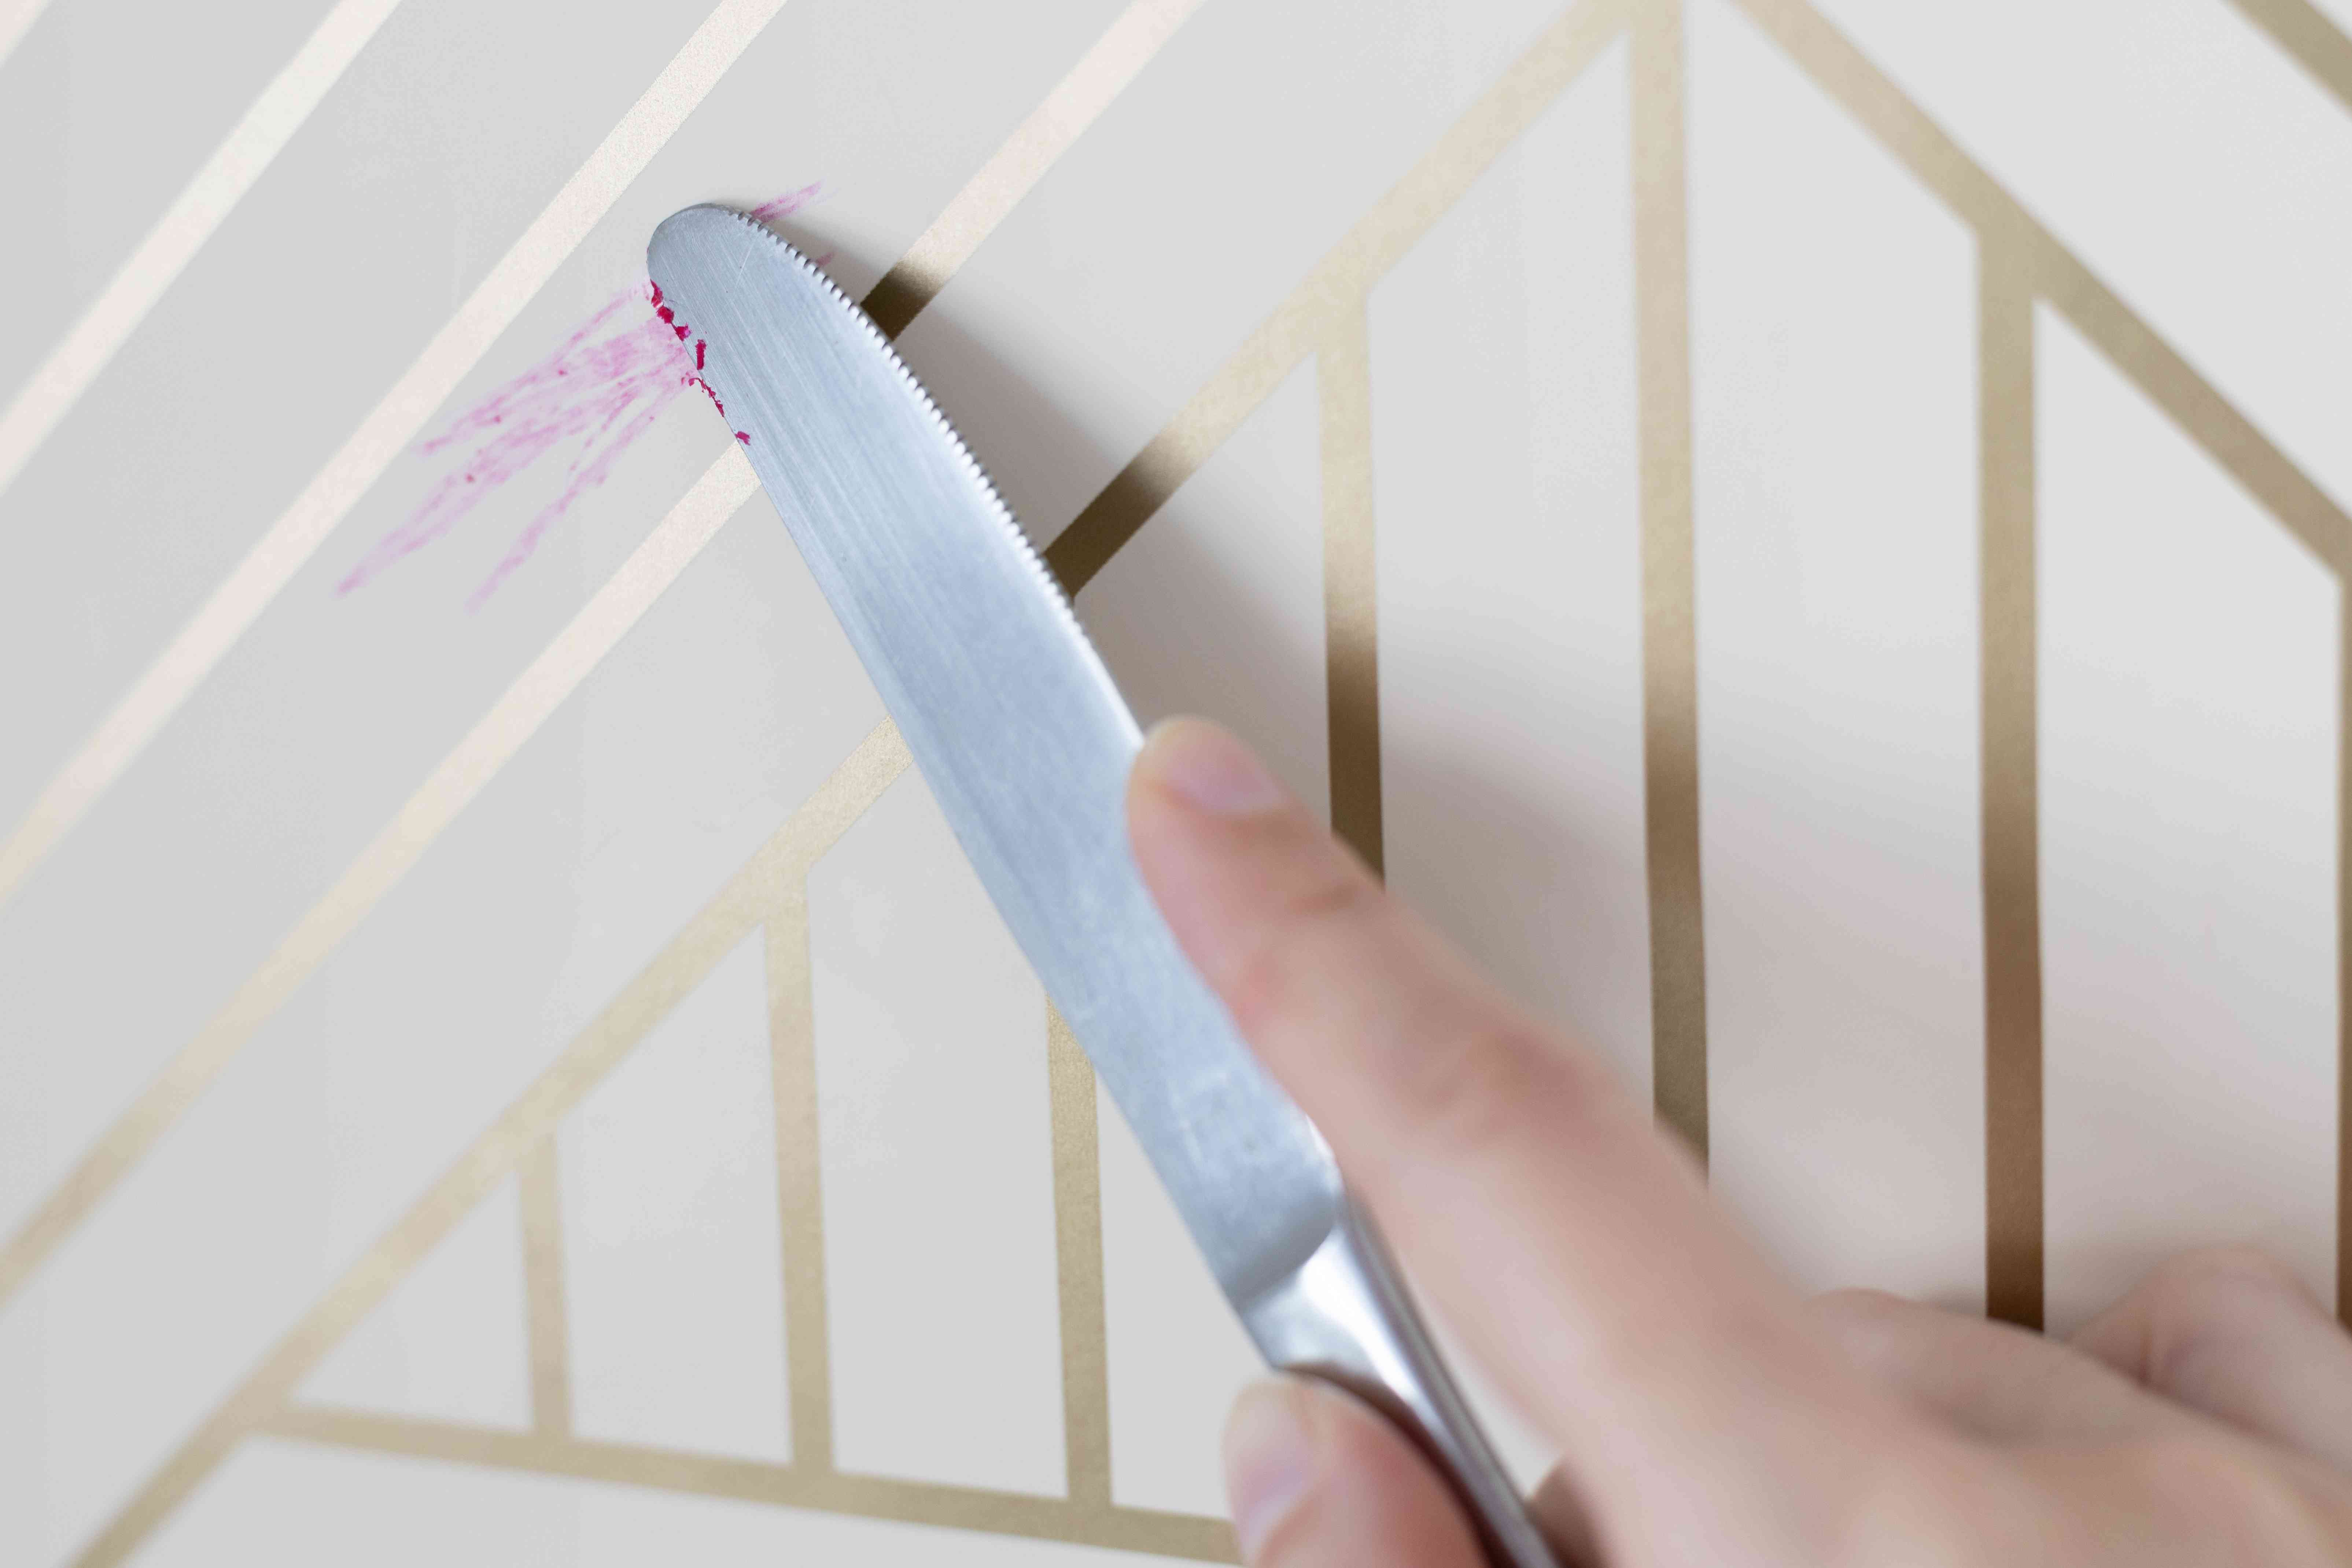 Pink crayon marks removed by dull-edged knife from what and gold striped wallpaper